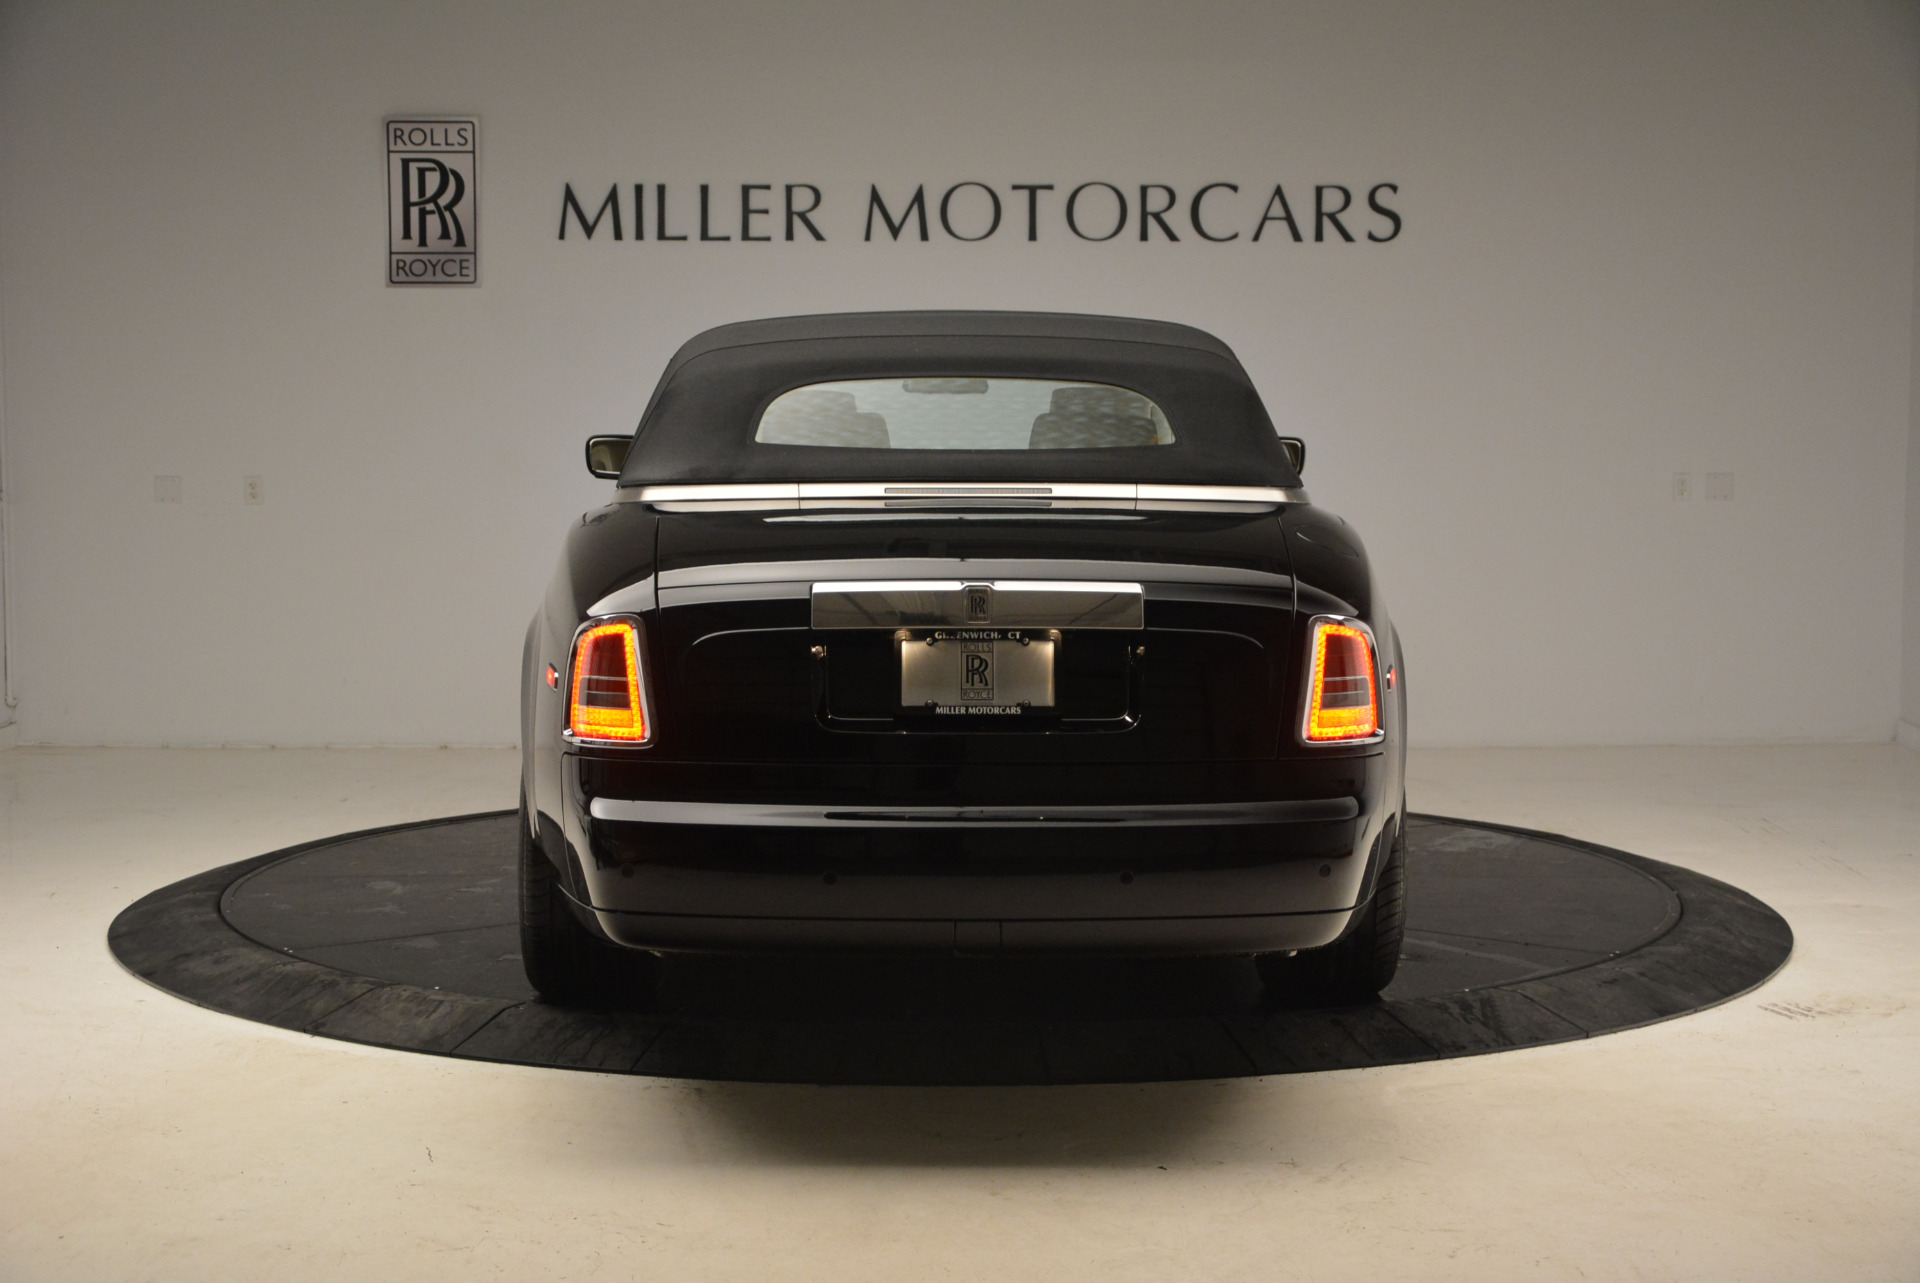 Used 2009 Rolls-Royce Phantom Drophead Coupe  For Sale In Greenwich, CT 1792_p18